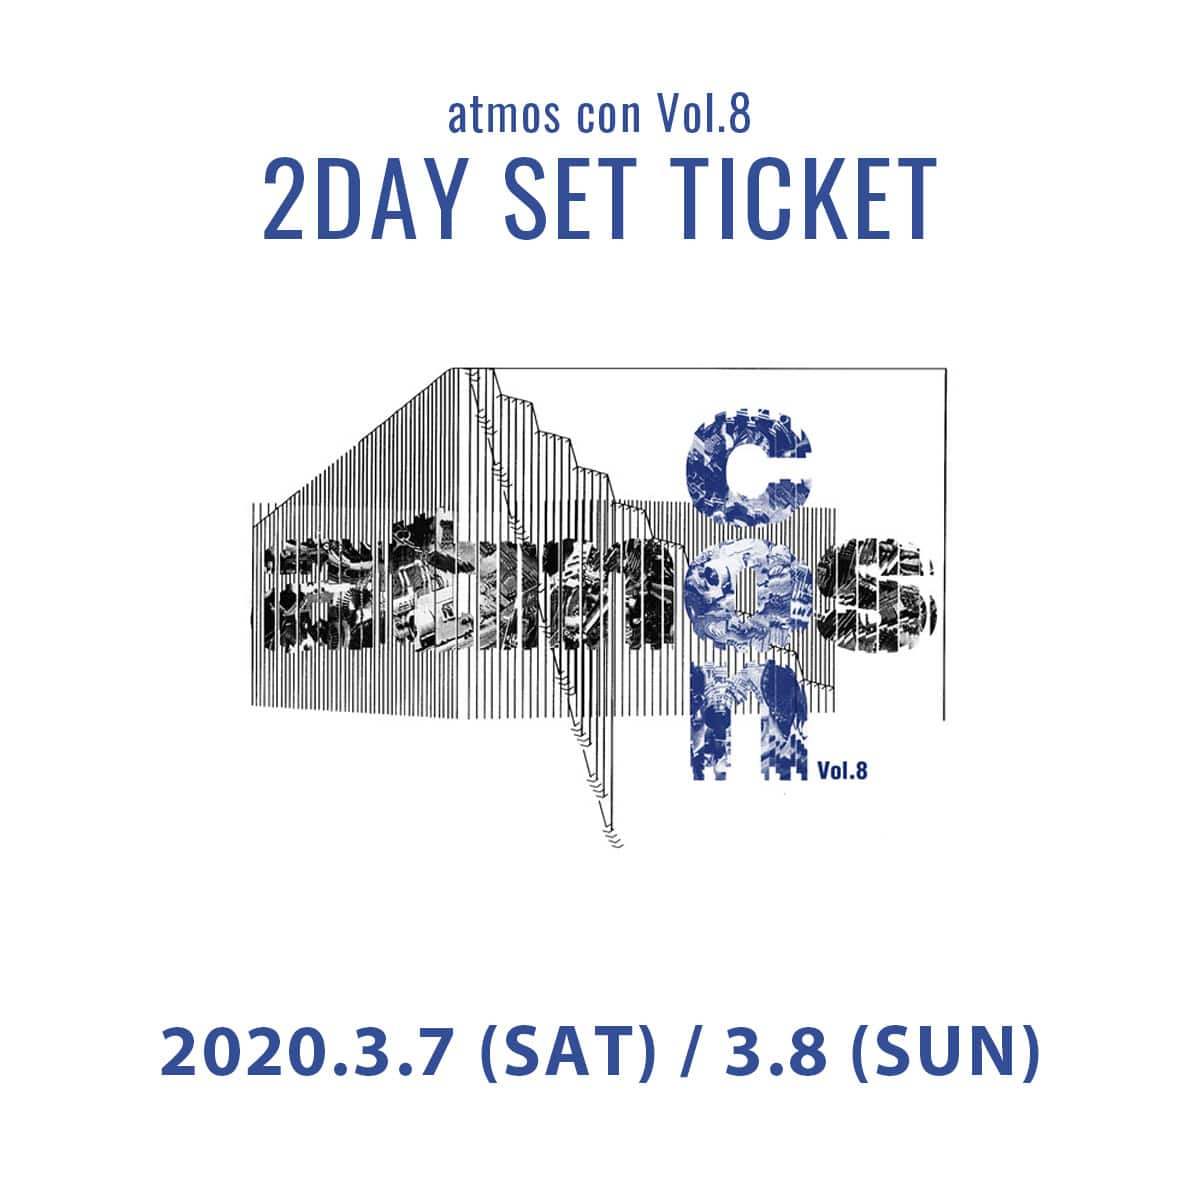 atmos con Vol.8 一般チケット(3月7、8日) 2DAY SET 20SP-S_photo_large